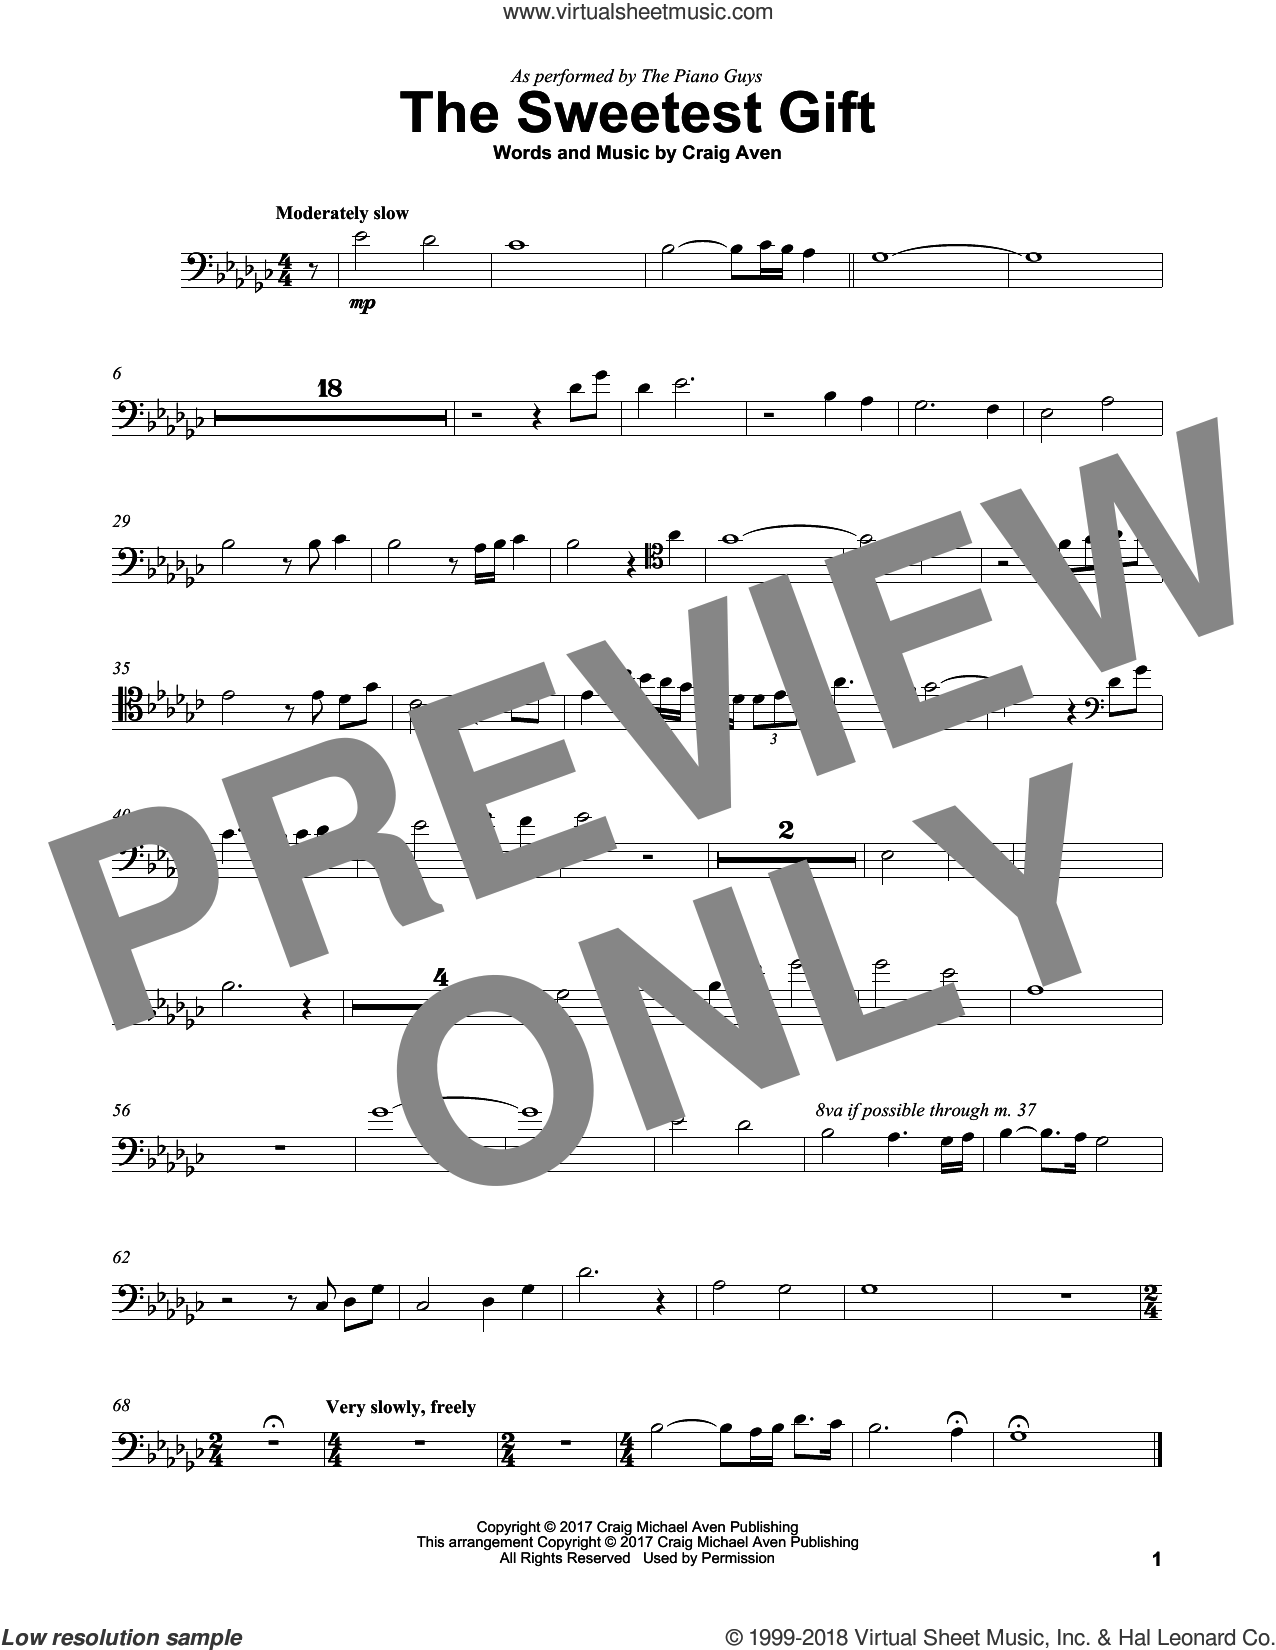 The Sweetest Gift sheet music for cello solo by The Piano Guys and Craig Aven, intermediate skill level